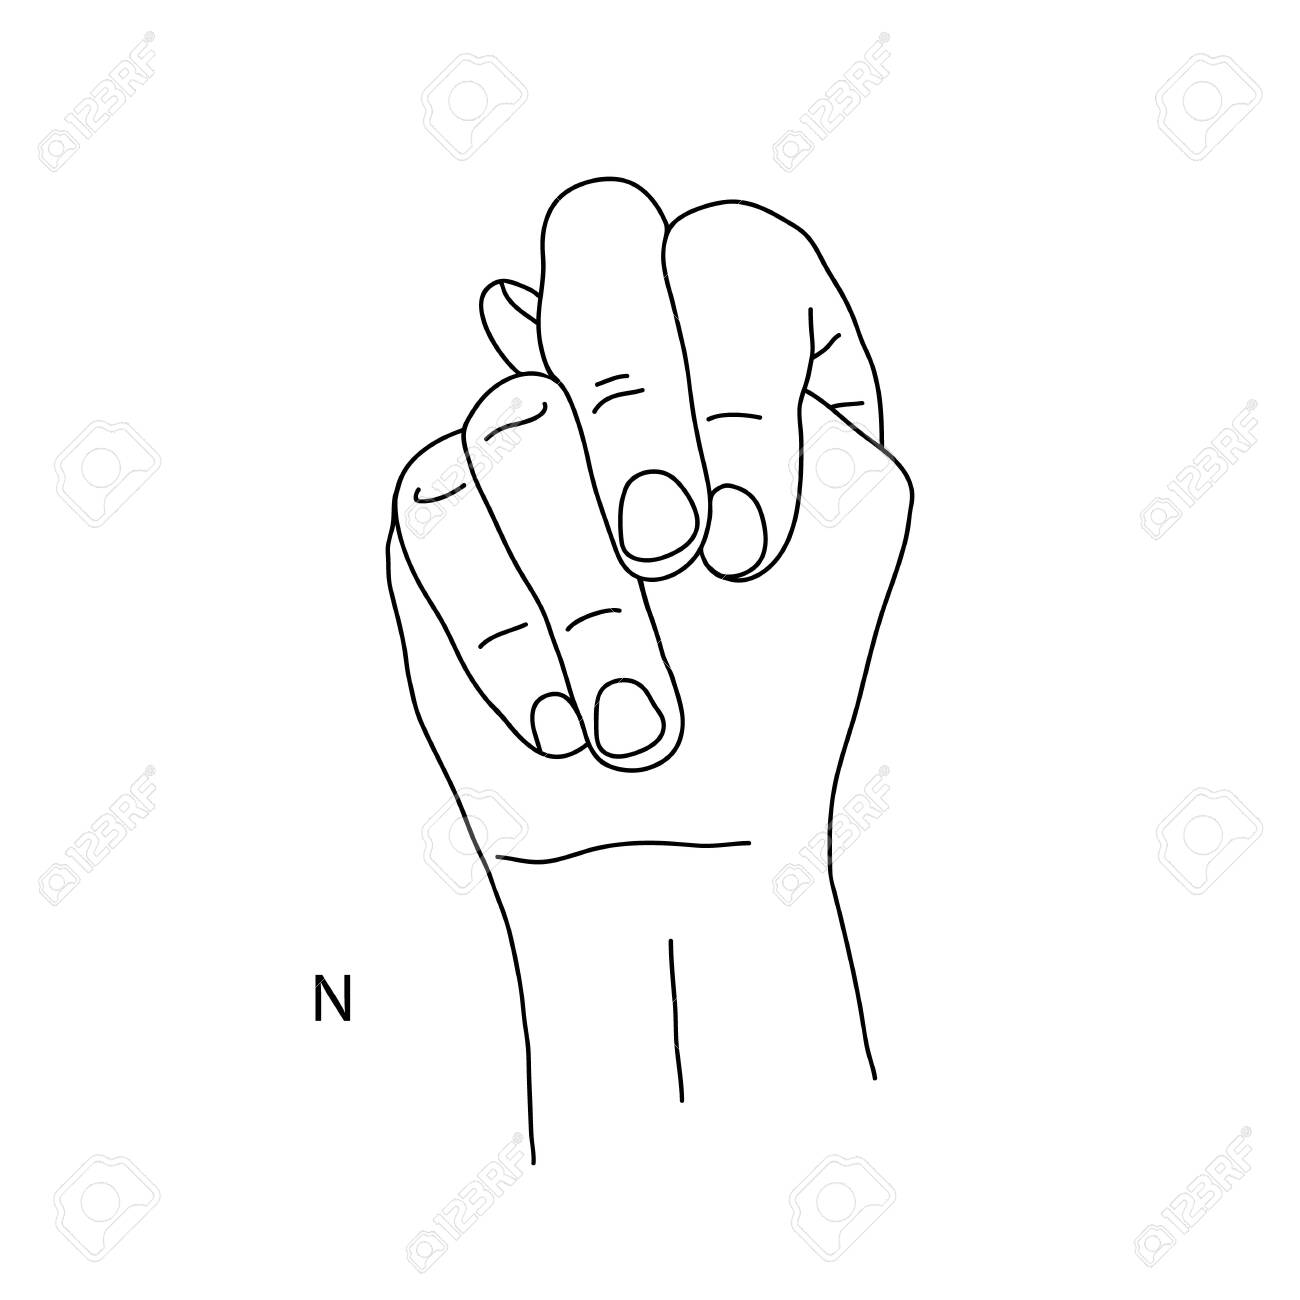 N Is The Fourteenth Letter Of The Alphabet In Sign Language Royalty Free Cliparts Vectors And Stock Illustration Image 144718005